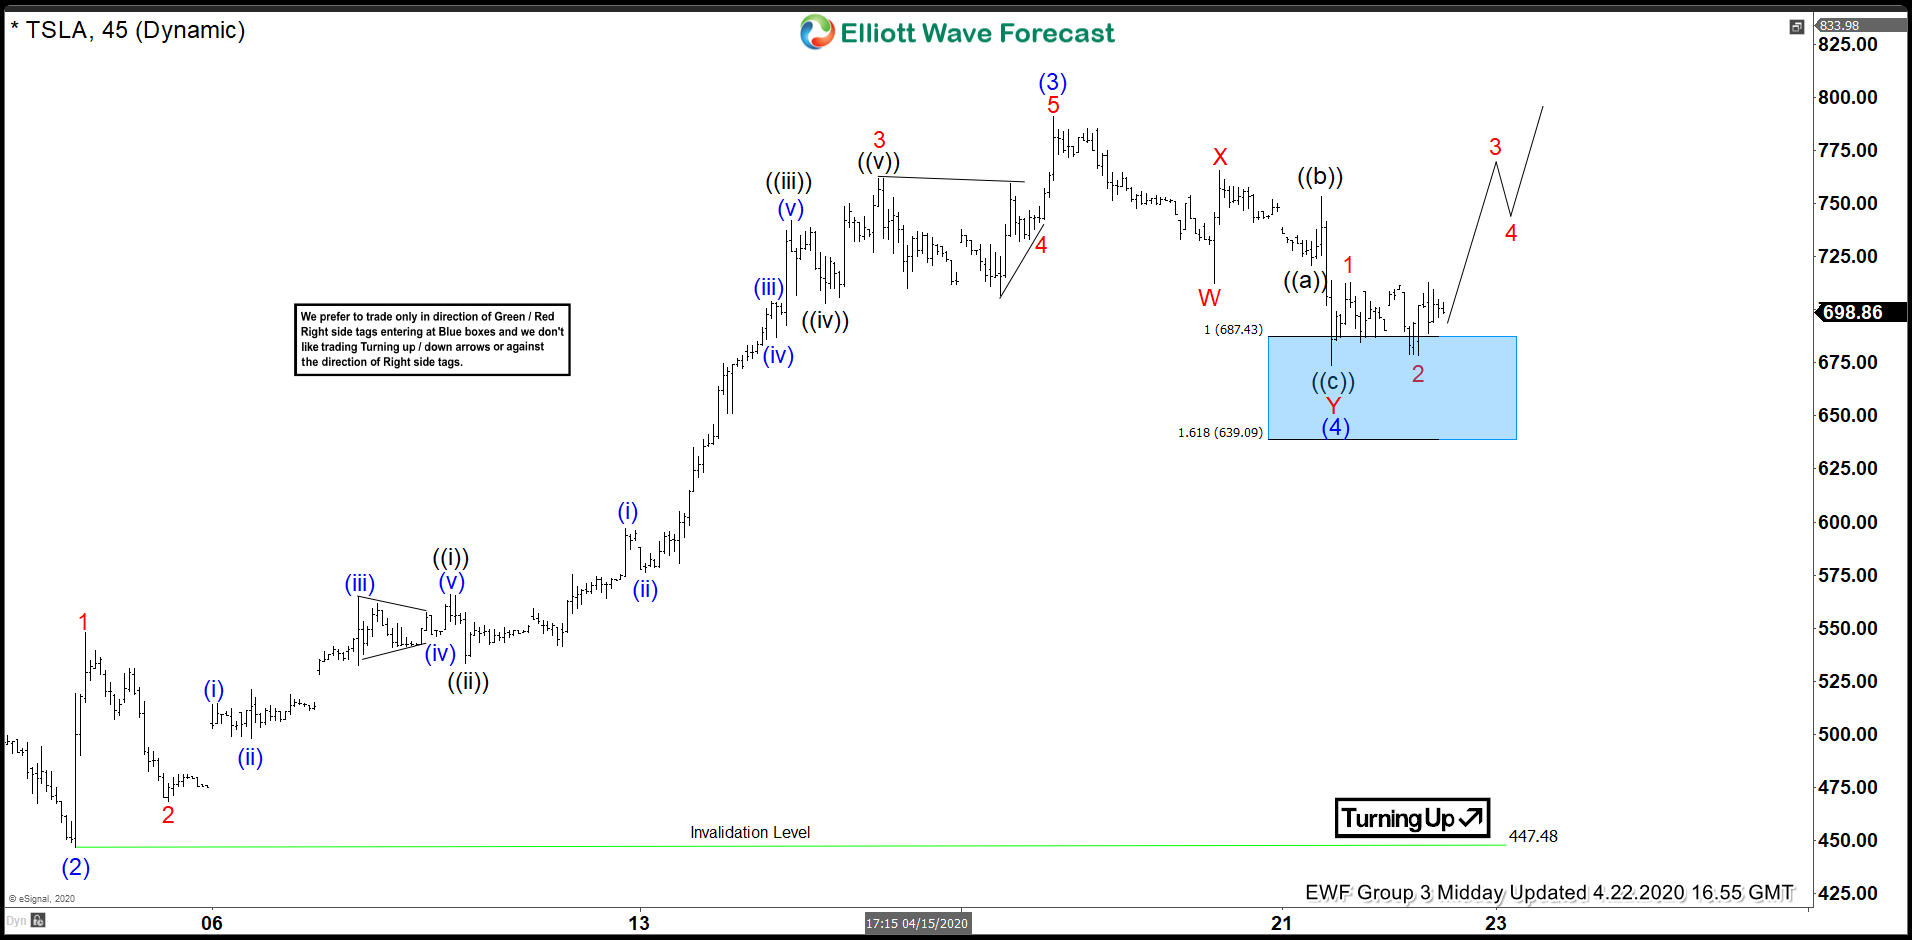 Tesla Elliott Wave View: Buying The Wave Four Pullback